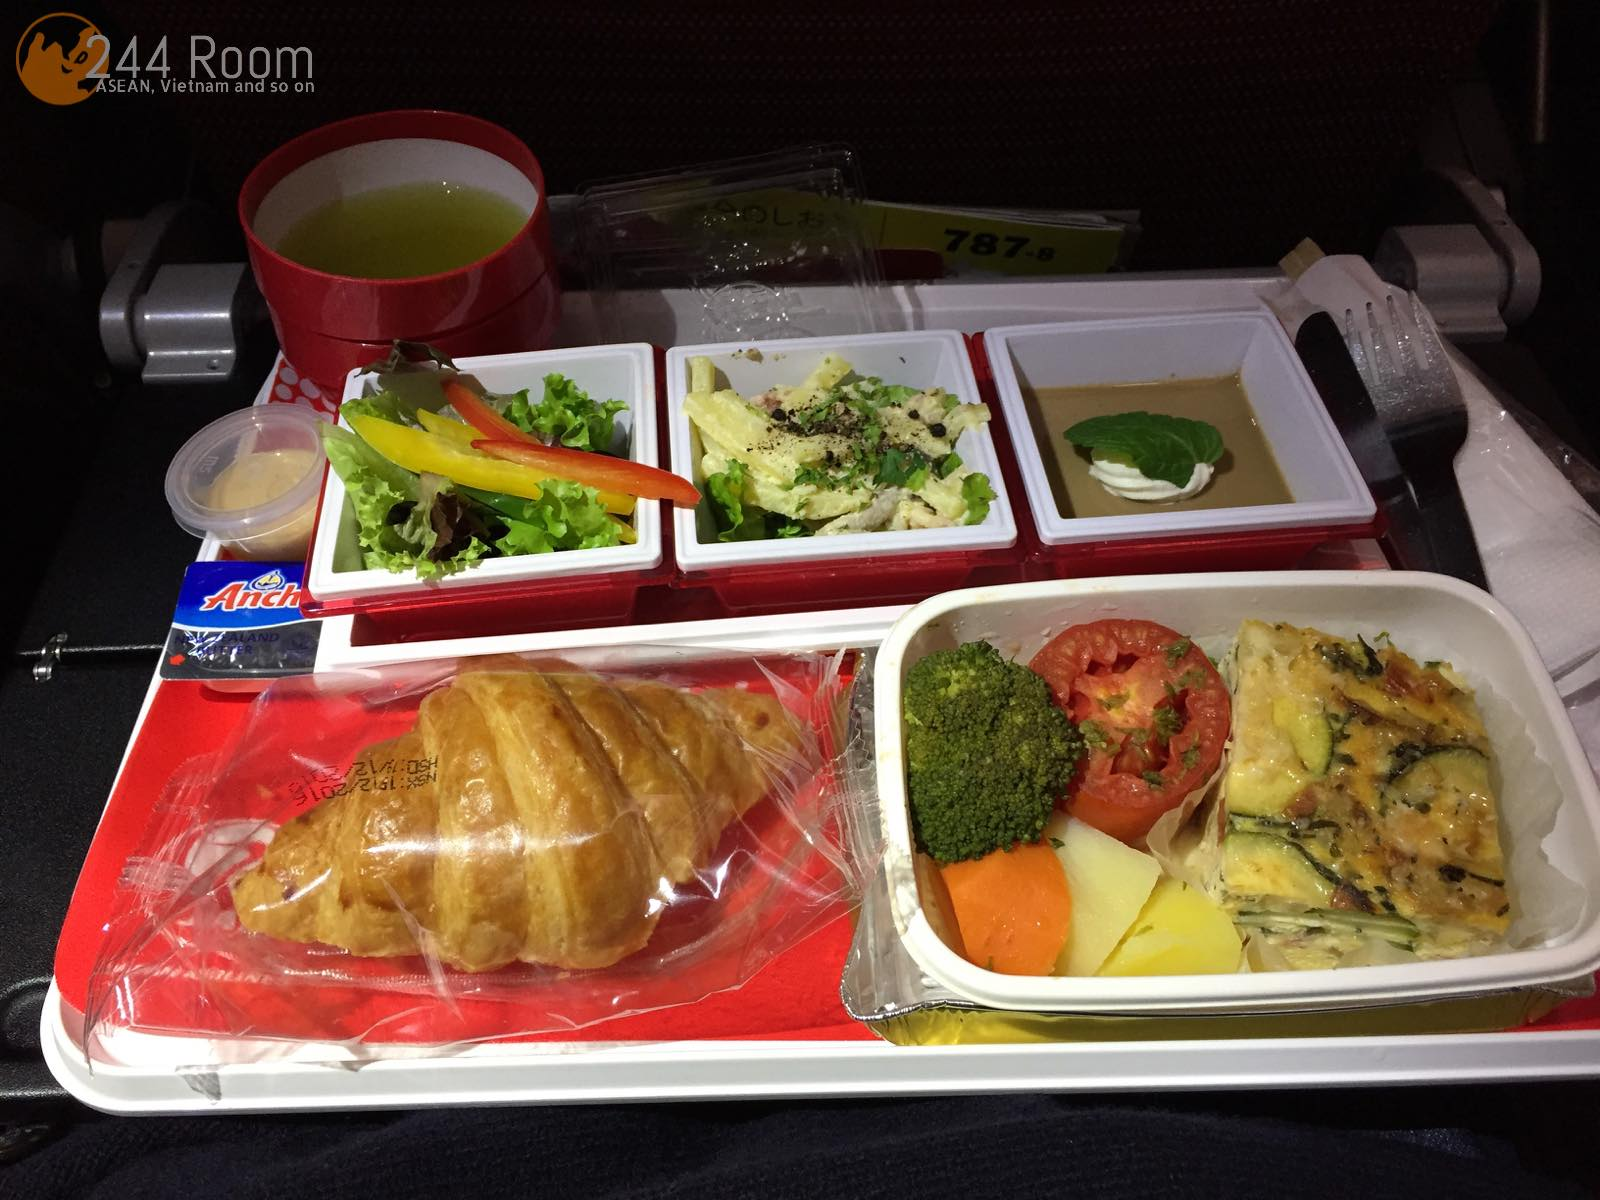 JALJL752機内食(朝食) Jal in-flight meal2